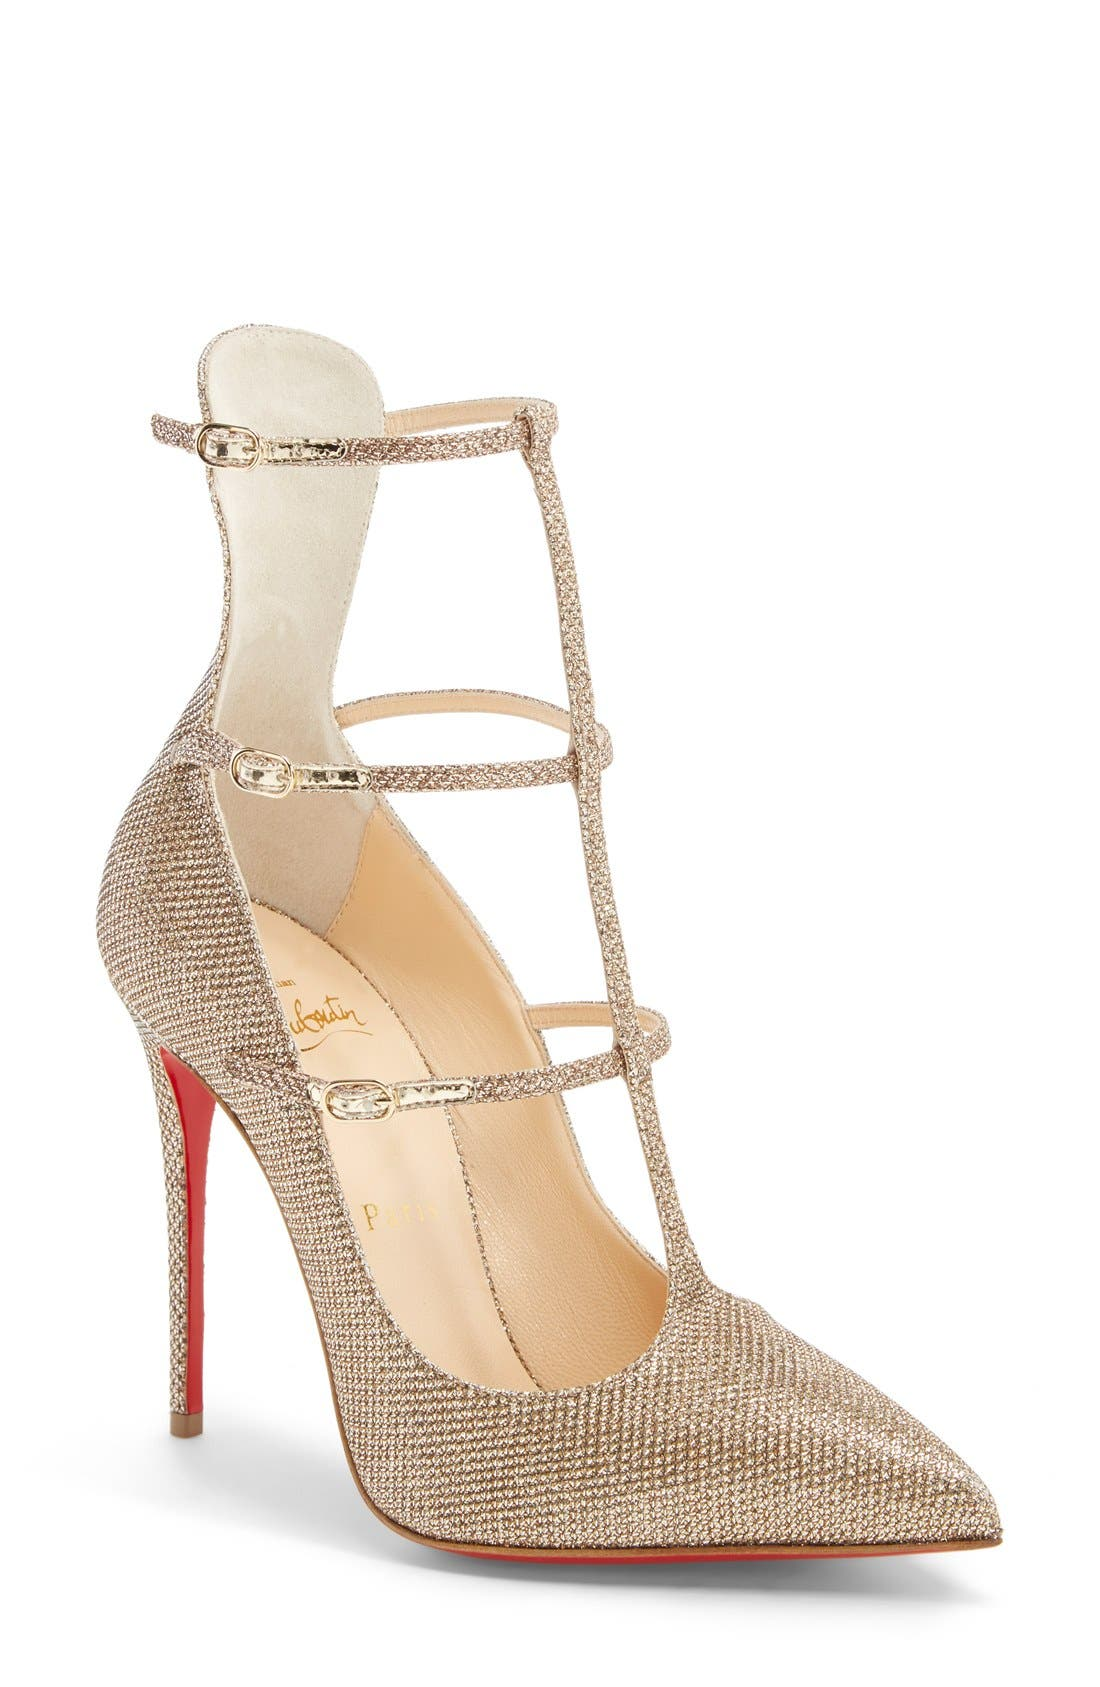 Main Image - Christian Louboutin 'Toeless' Caged Pointy Toe Pump